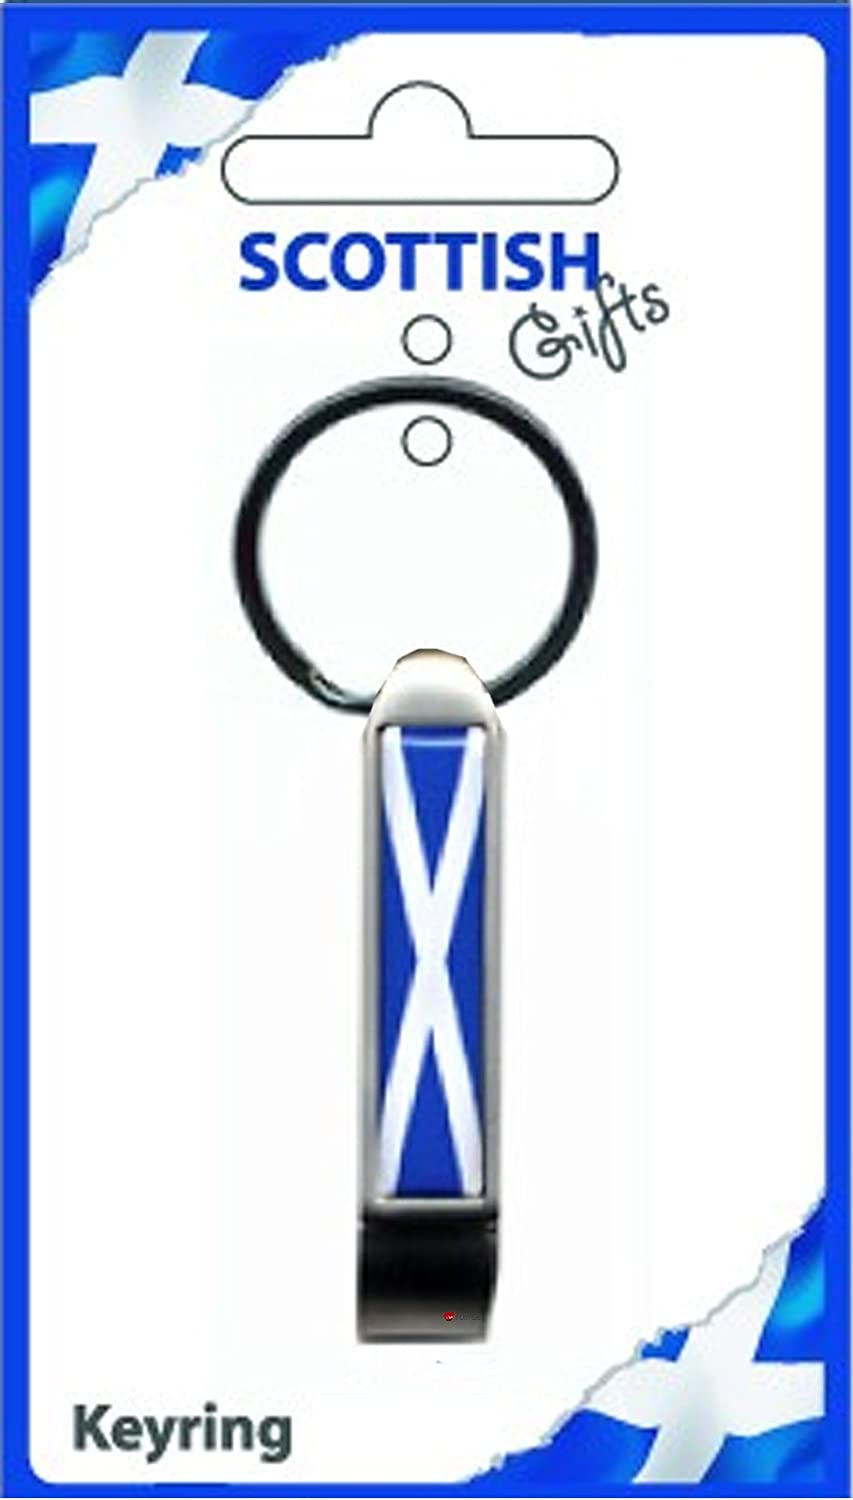 【楽天スーパーセール】 Scotland Blue Bottle Saltire B007OBK8SC Opener Keyring Scottish Saltire Blue B007OBK8SC, ナトリシ:365ad644 --- yelica.com